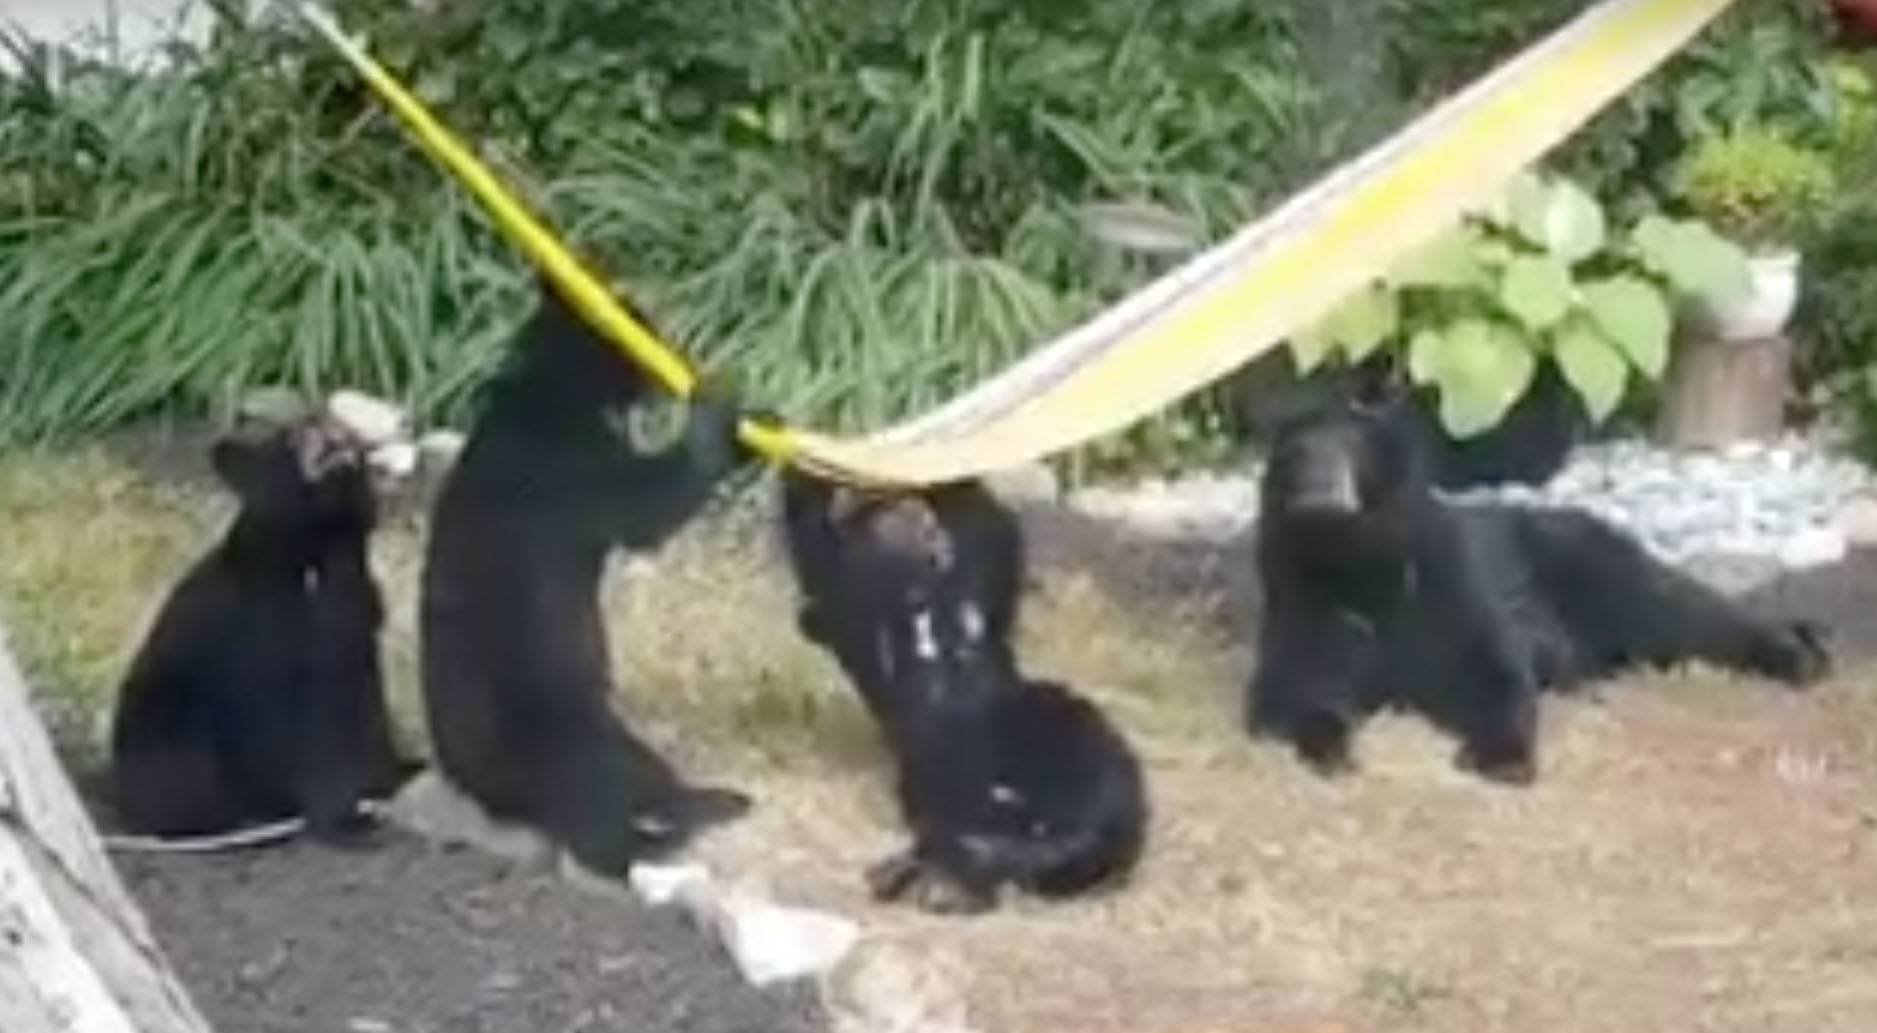 Black bear cubs playing with hammock neville anthony judd facebook